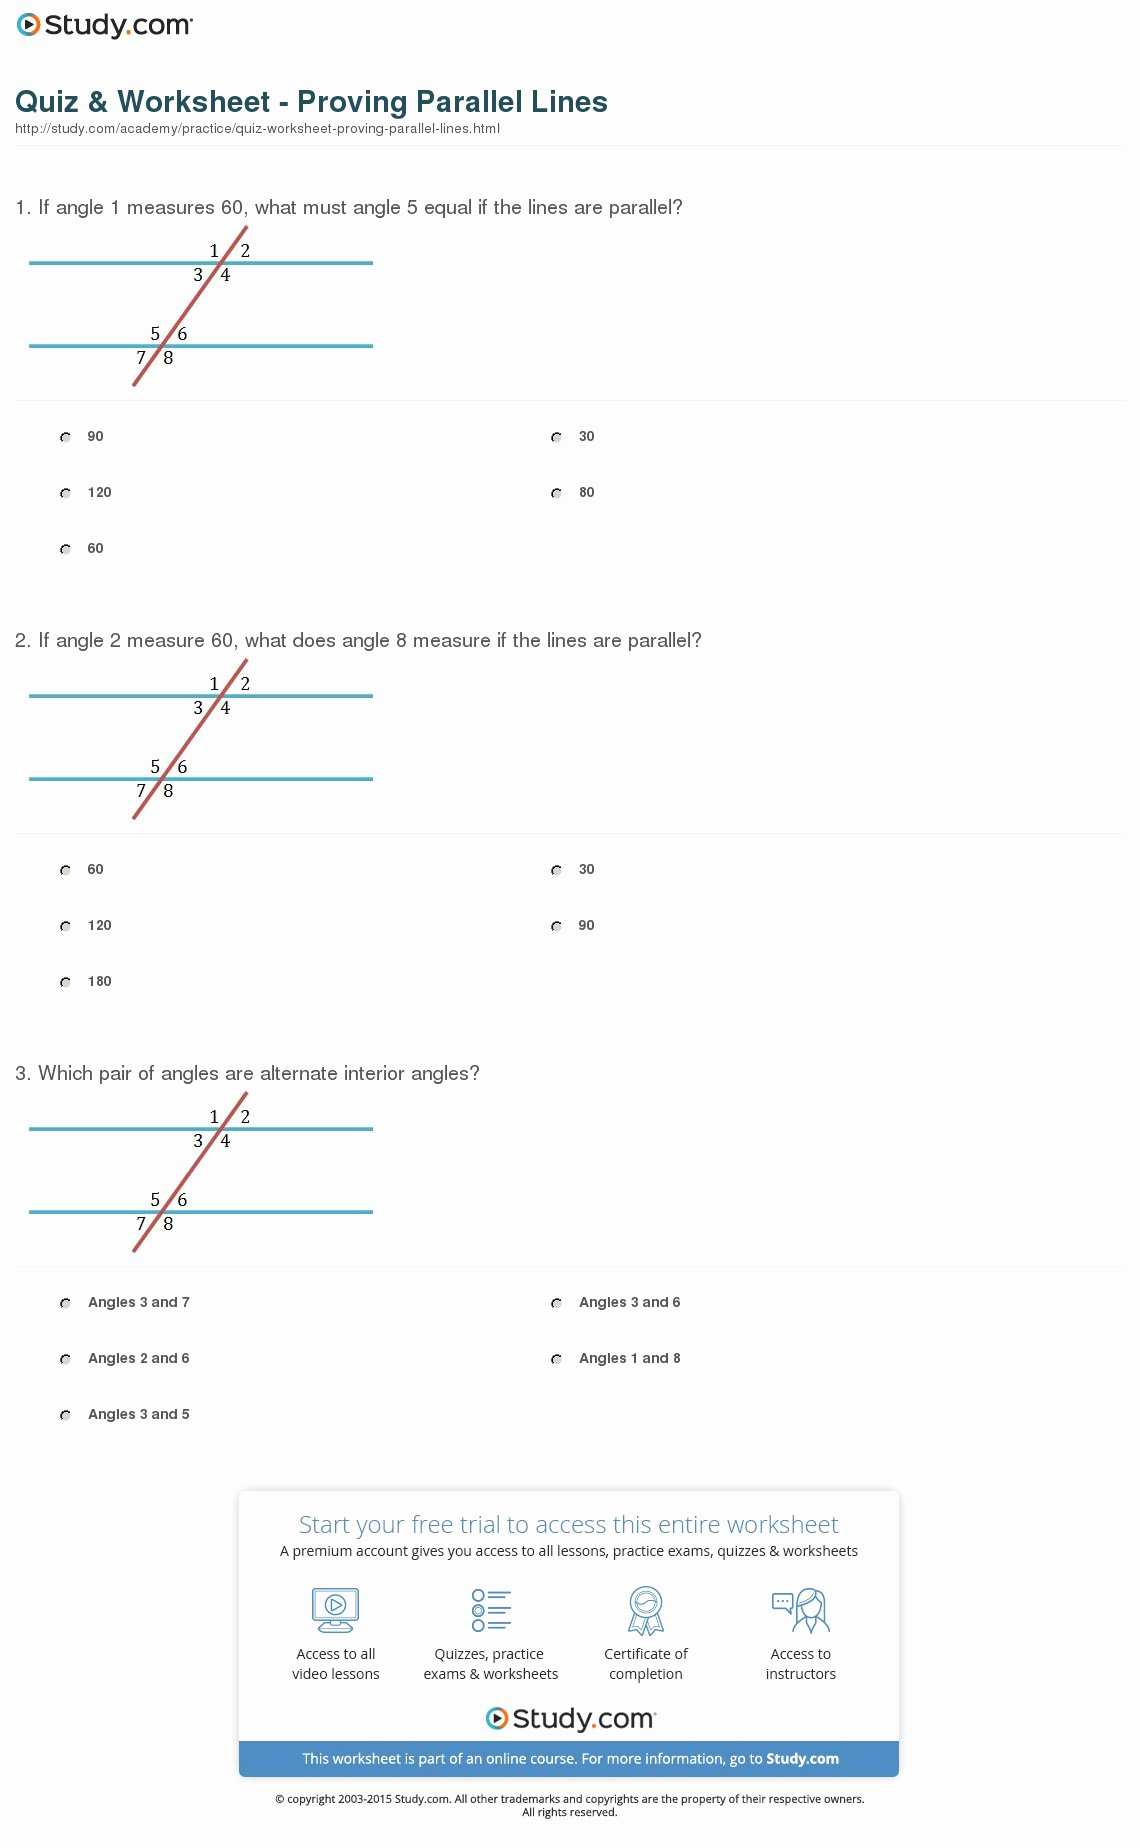 Proving Lines Parallel Worksheet Unique Quiz & Worksheet Proving Parallel Lines